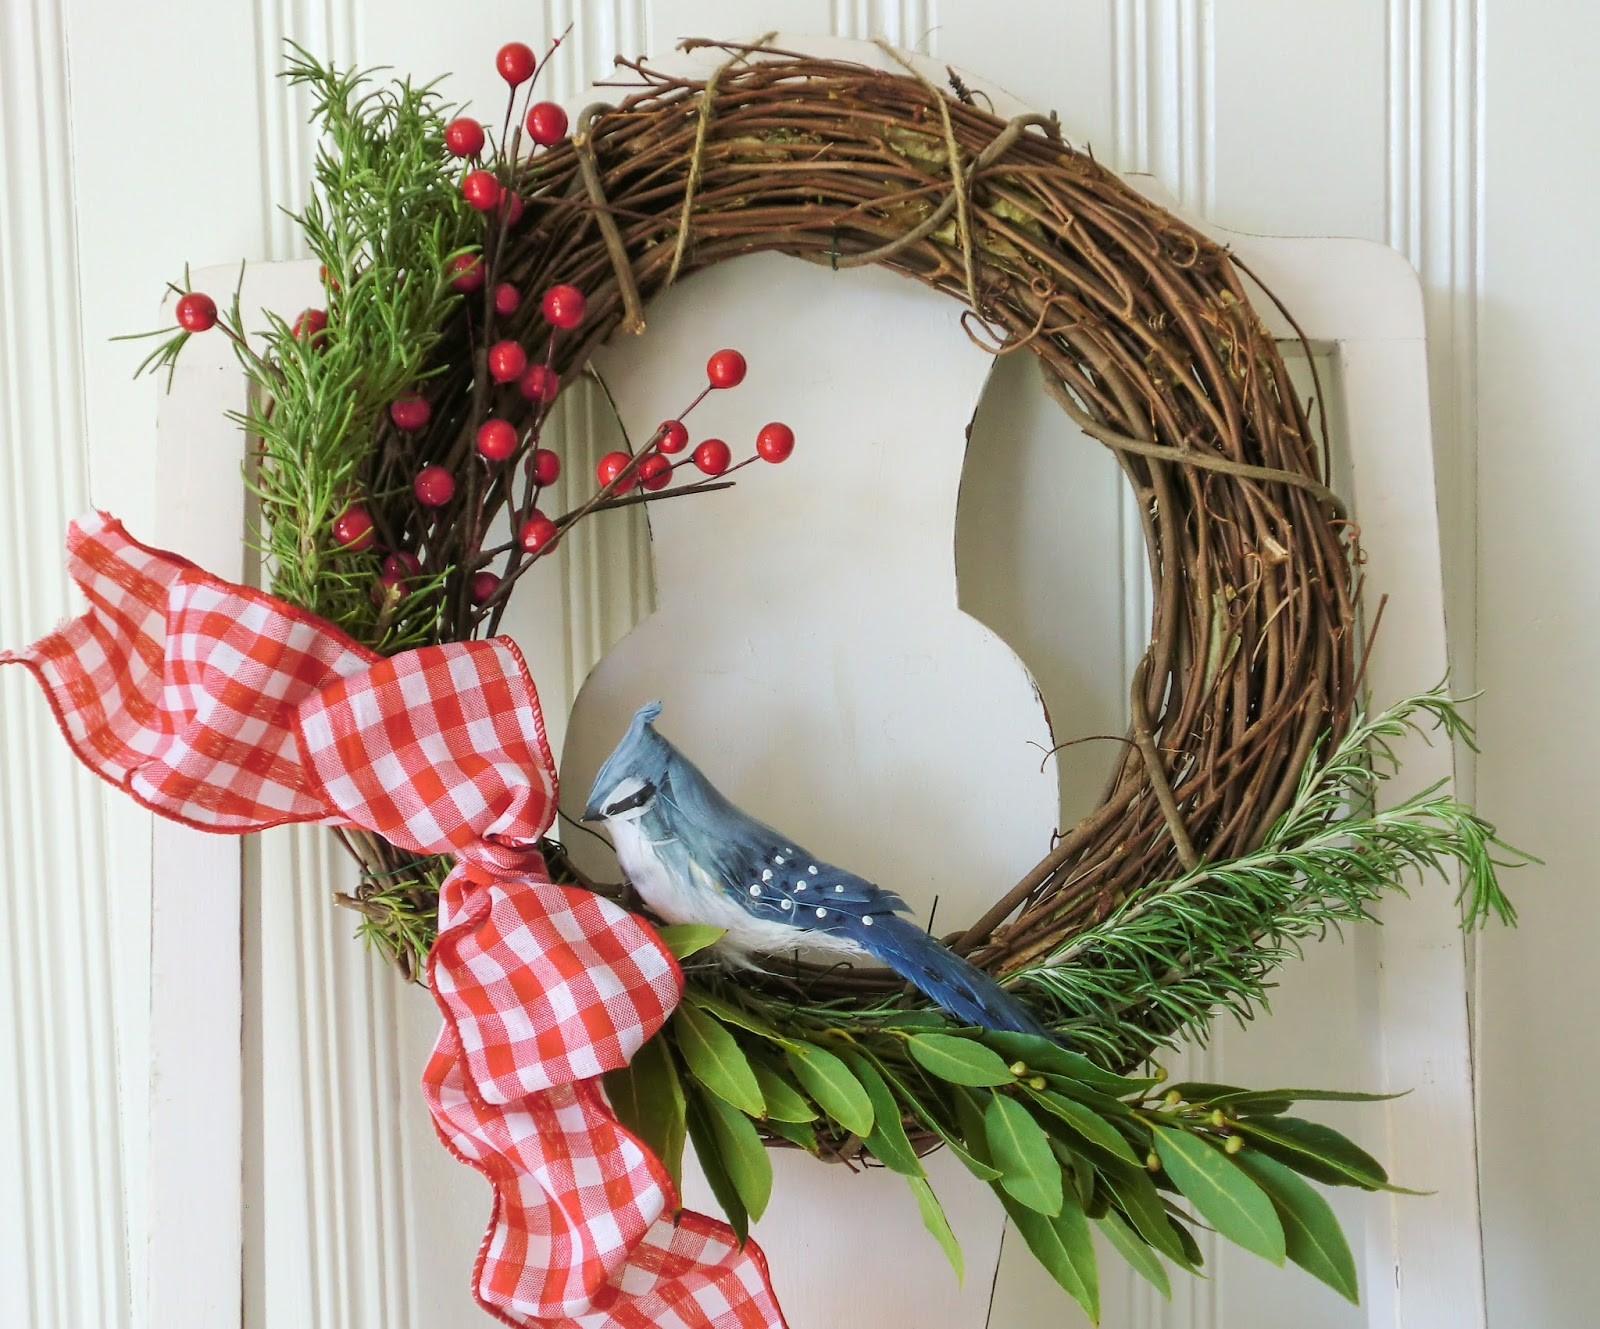 throwing it together is how it is with these handy things that you can pick up at craft stores such as jo ann fabric and crafts or michaels if you - Michaels Christmas Wreaths